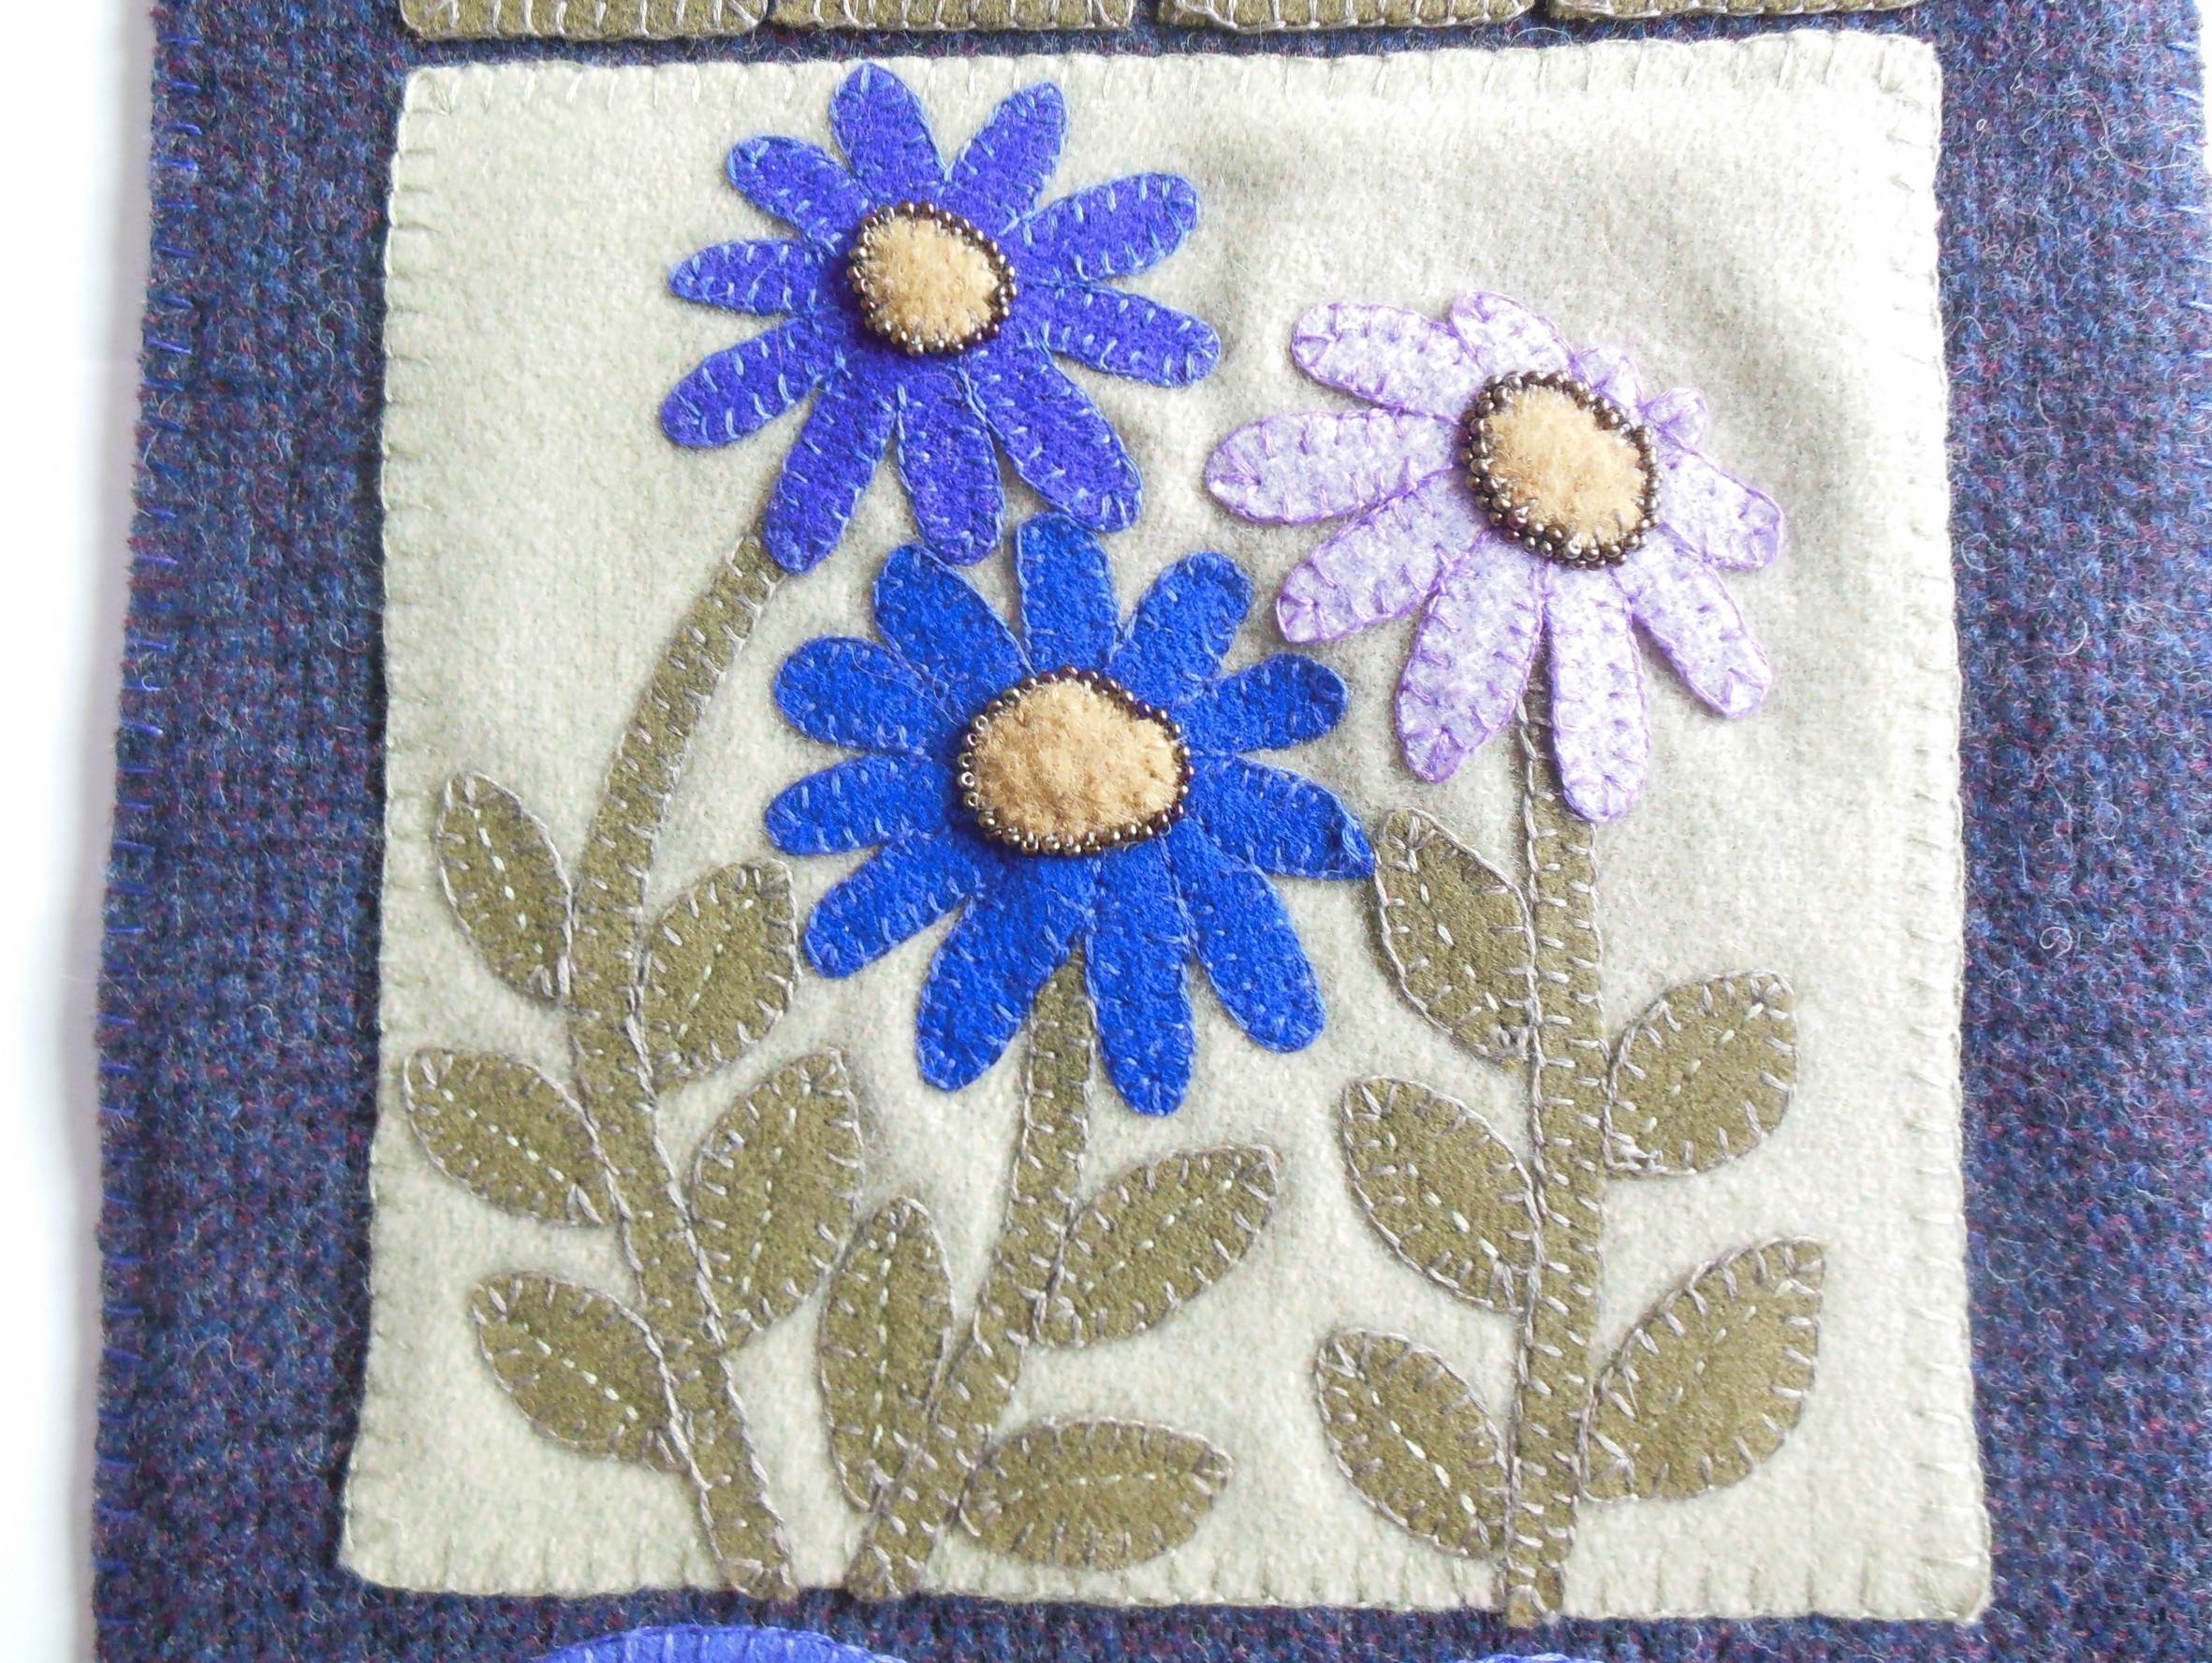 I replaced the French Knots with beads.